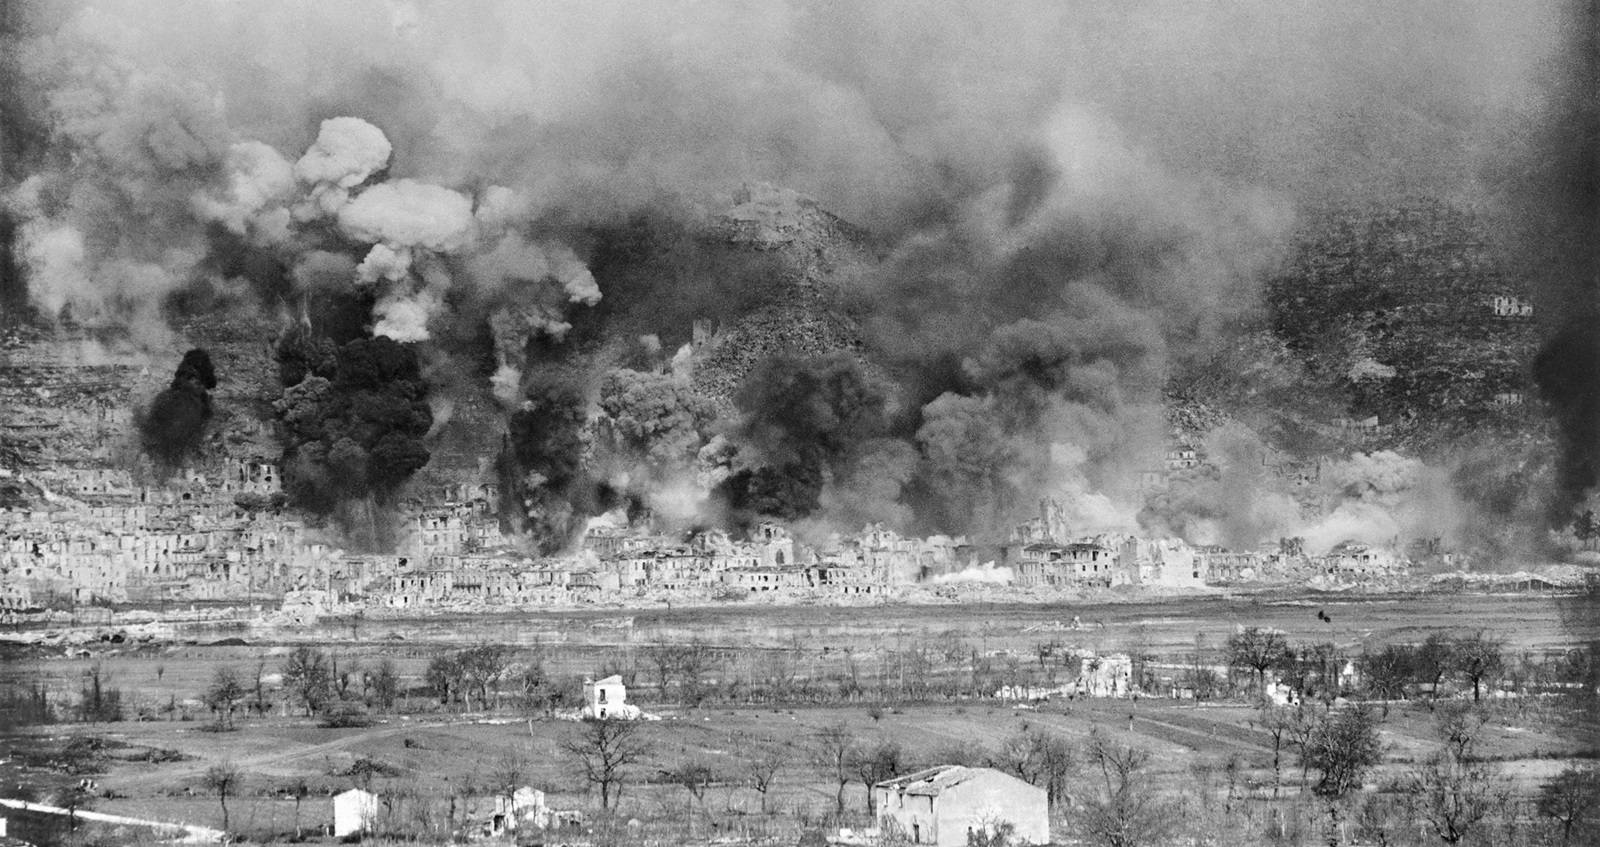 The town of Cassino shrouded in black smoke during the Allied barrage on 15 March 1944